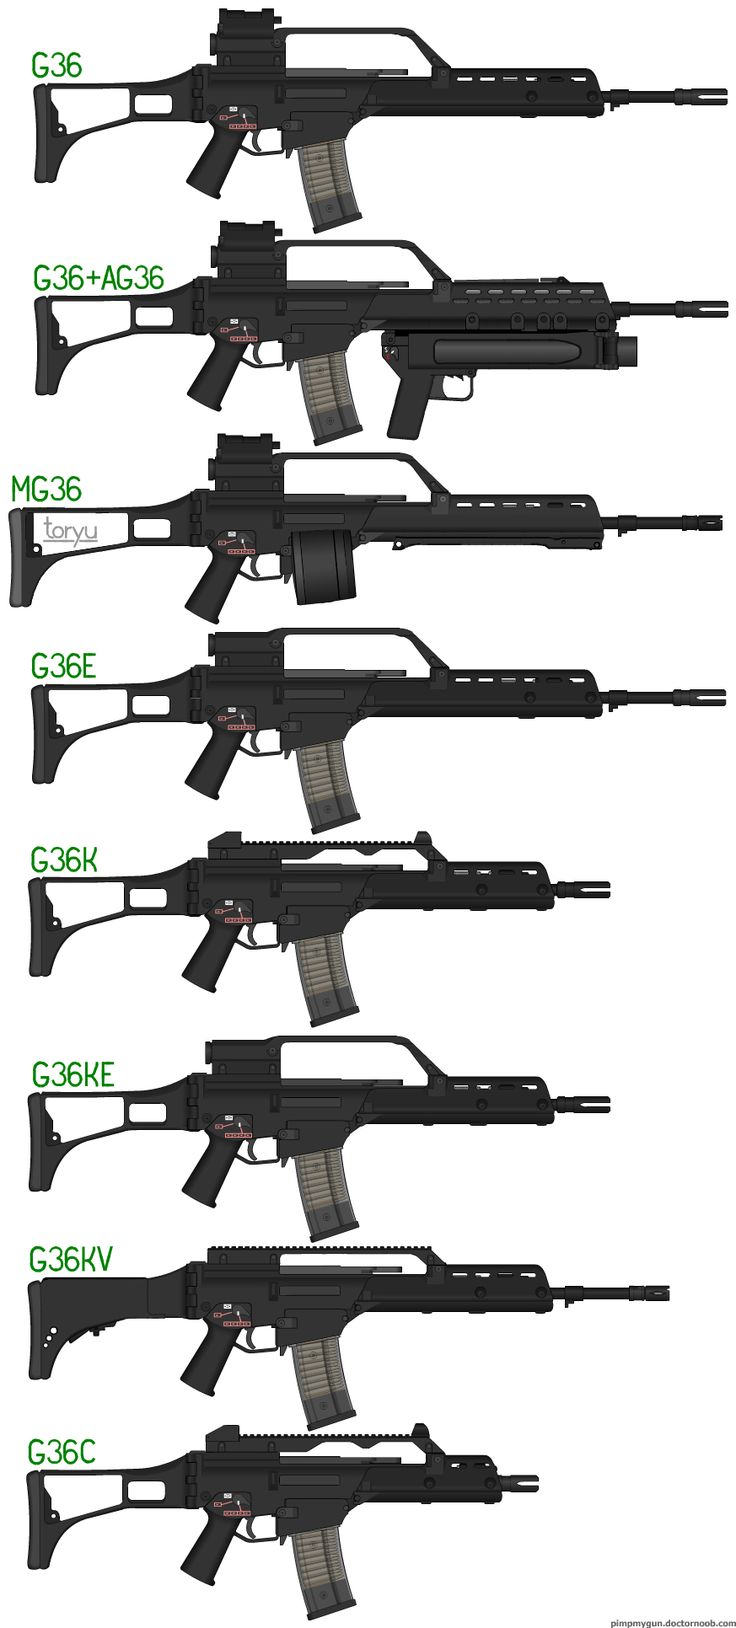 H&k G36 Assault Rifle Variants